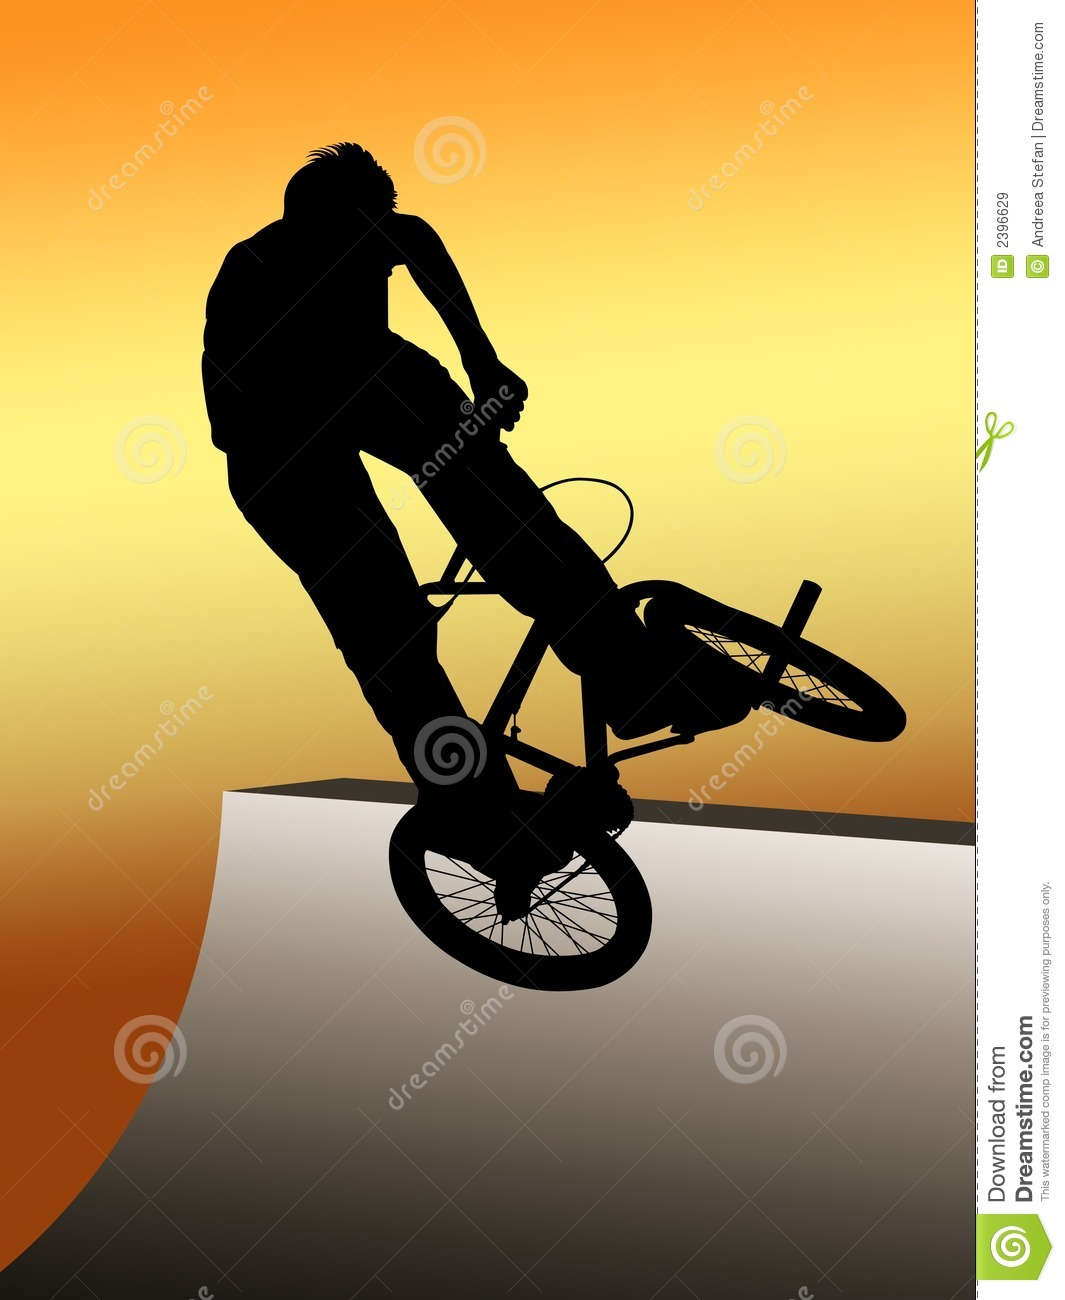 Teen Jumping With Bmx Bike Royalty Free Stock Images   Image  2396629